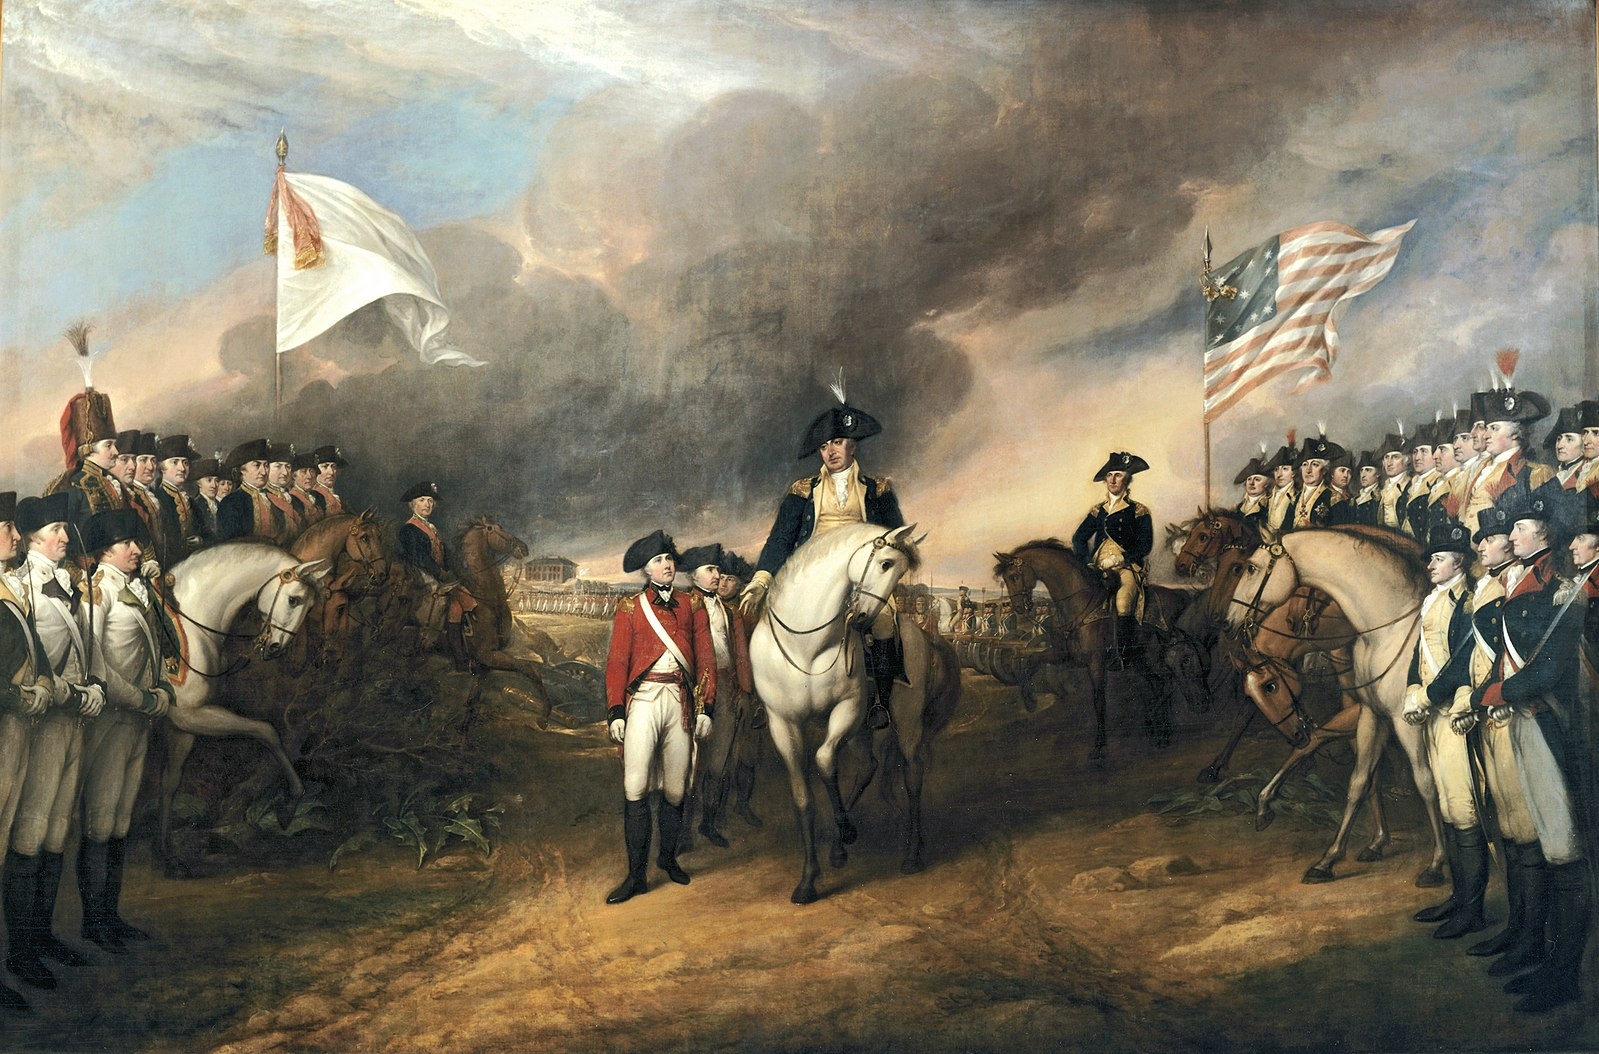 an analysis of the revolution of 1800 as a monumental in the development of the united states as a n Start studying the industrial revolution landowners looked down on them and 1800 rich entrepreneurs were and spread to the united states and new class of.